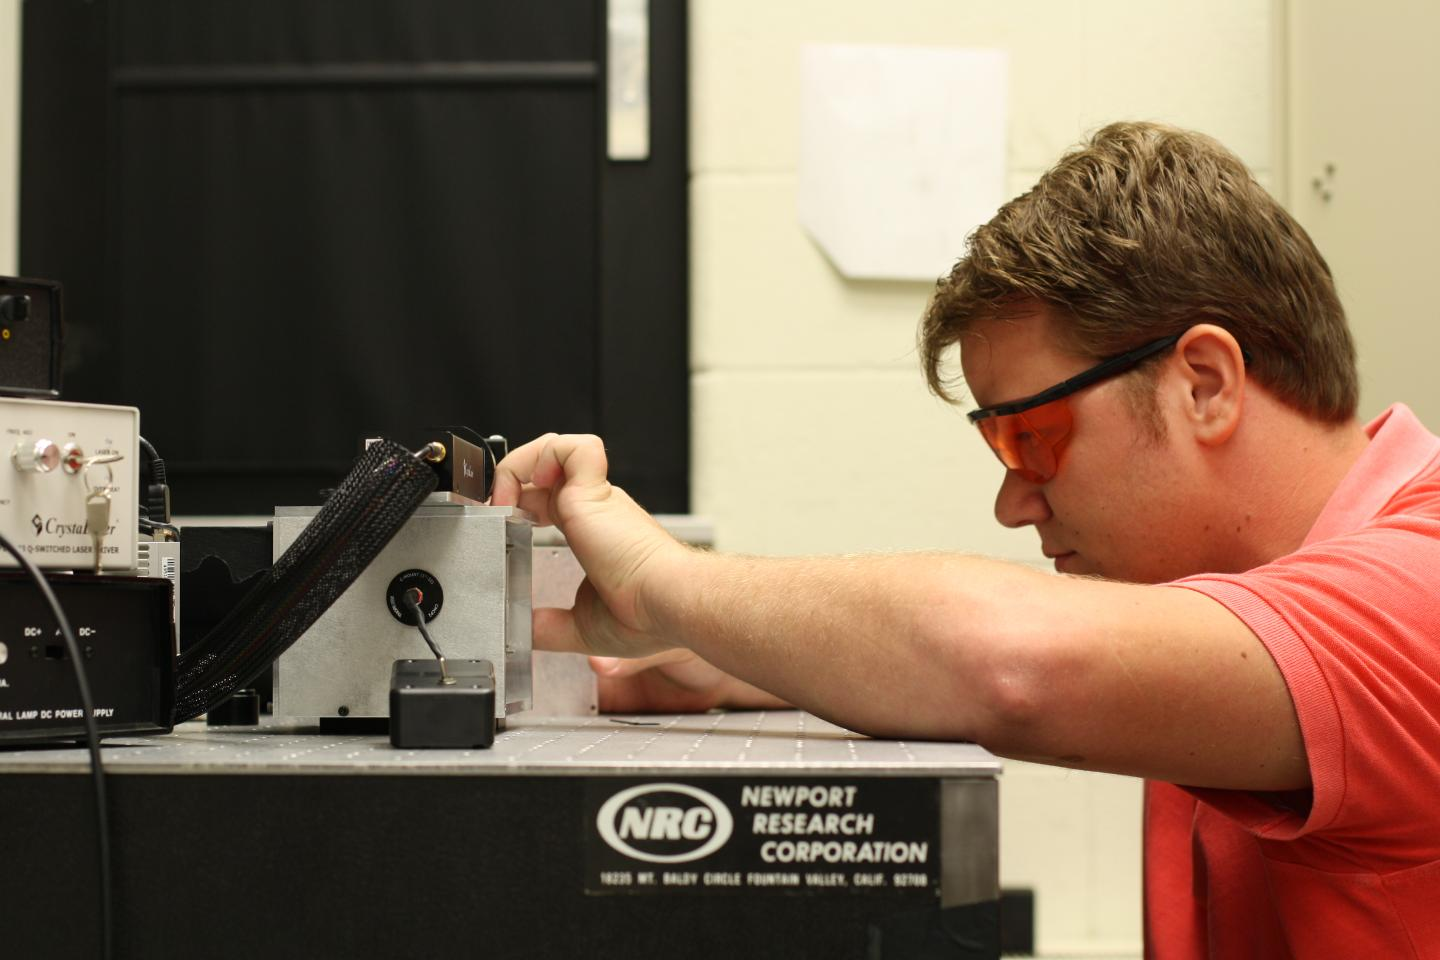 Derek Davis, a student from Old Dominion University, working on micro Raman spectroscopy instrument.